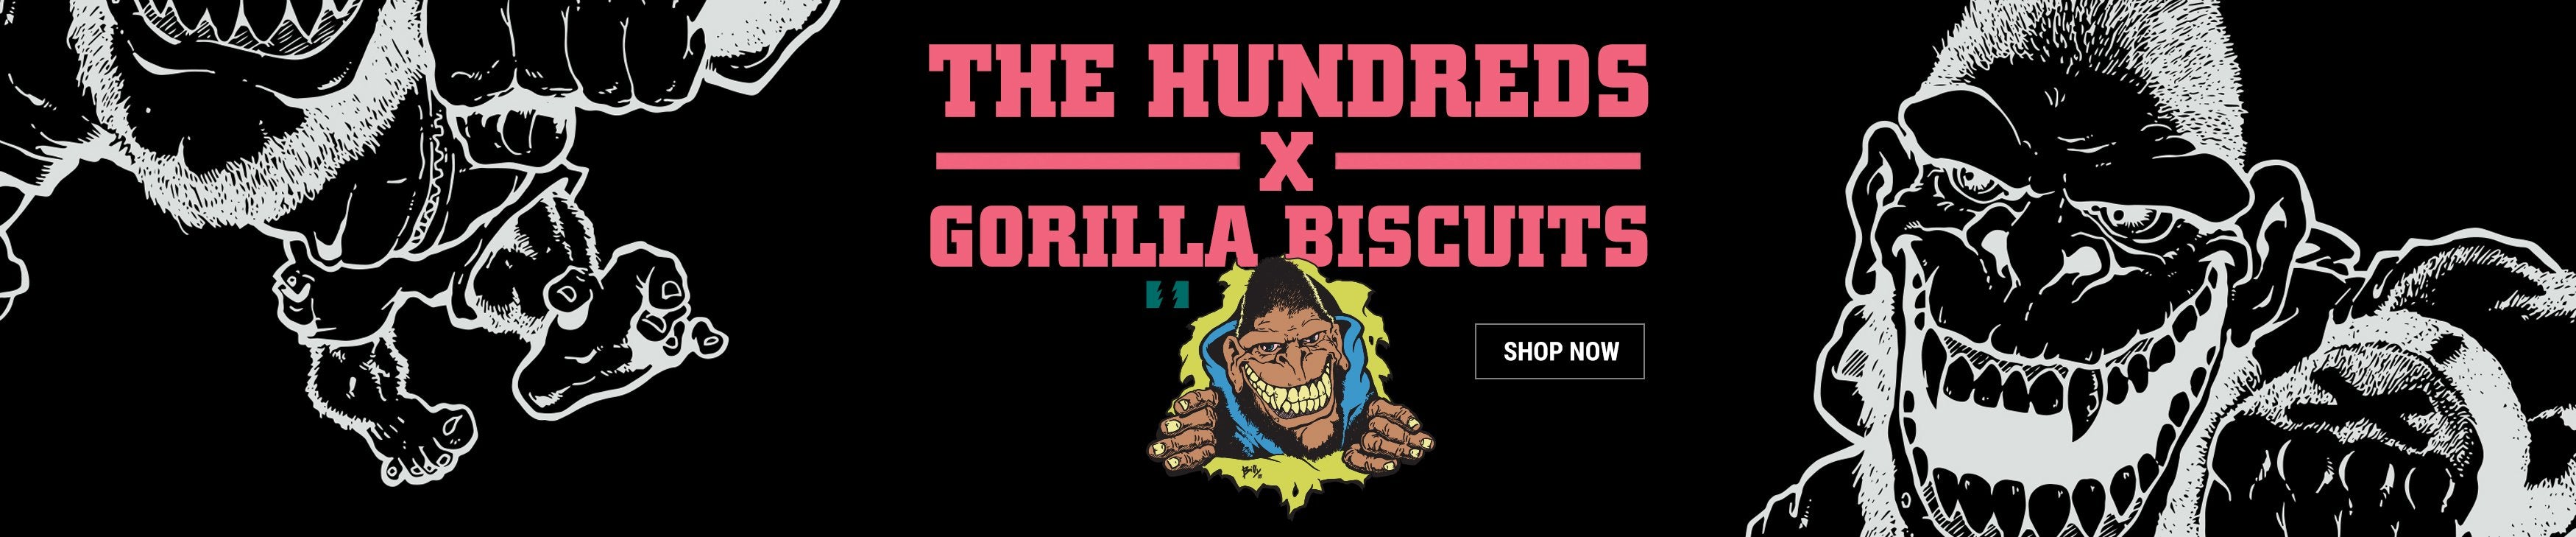 The Hundreds X Gorilla Biscuits